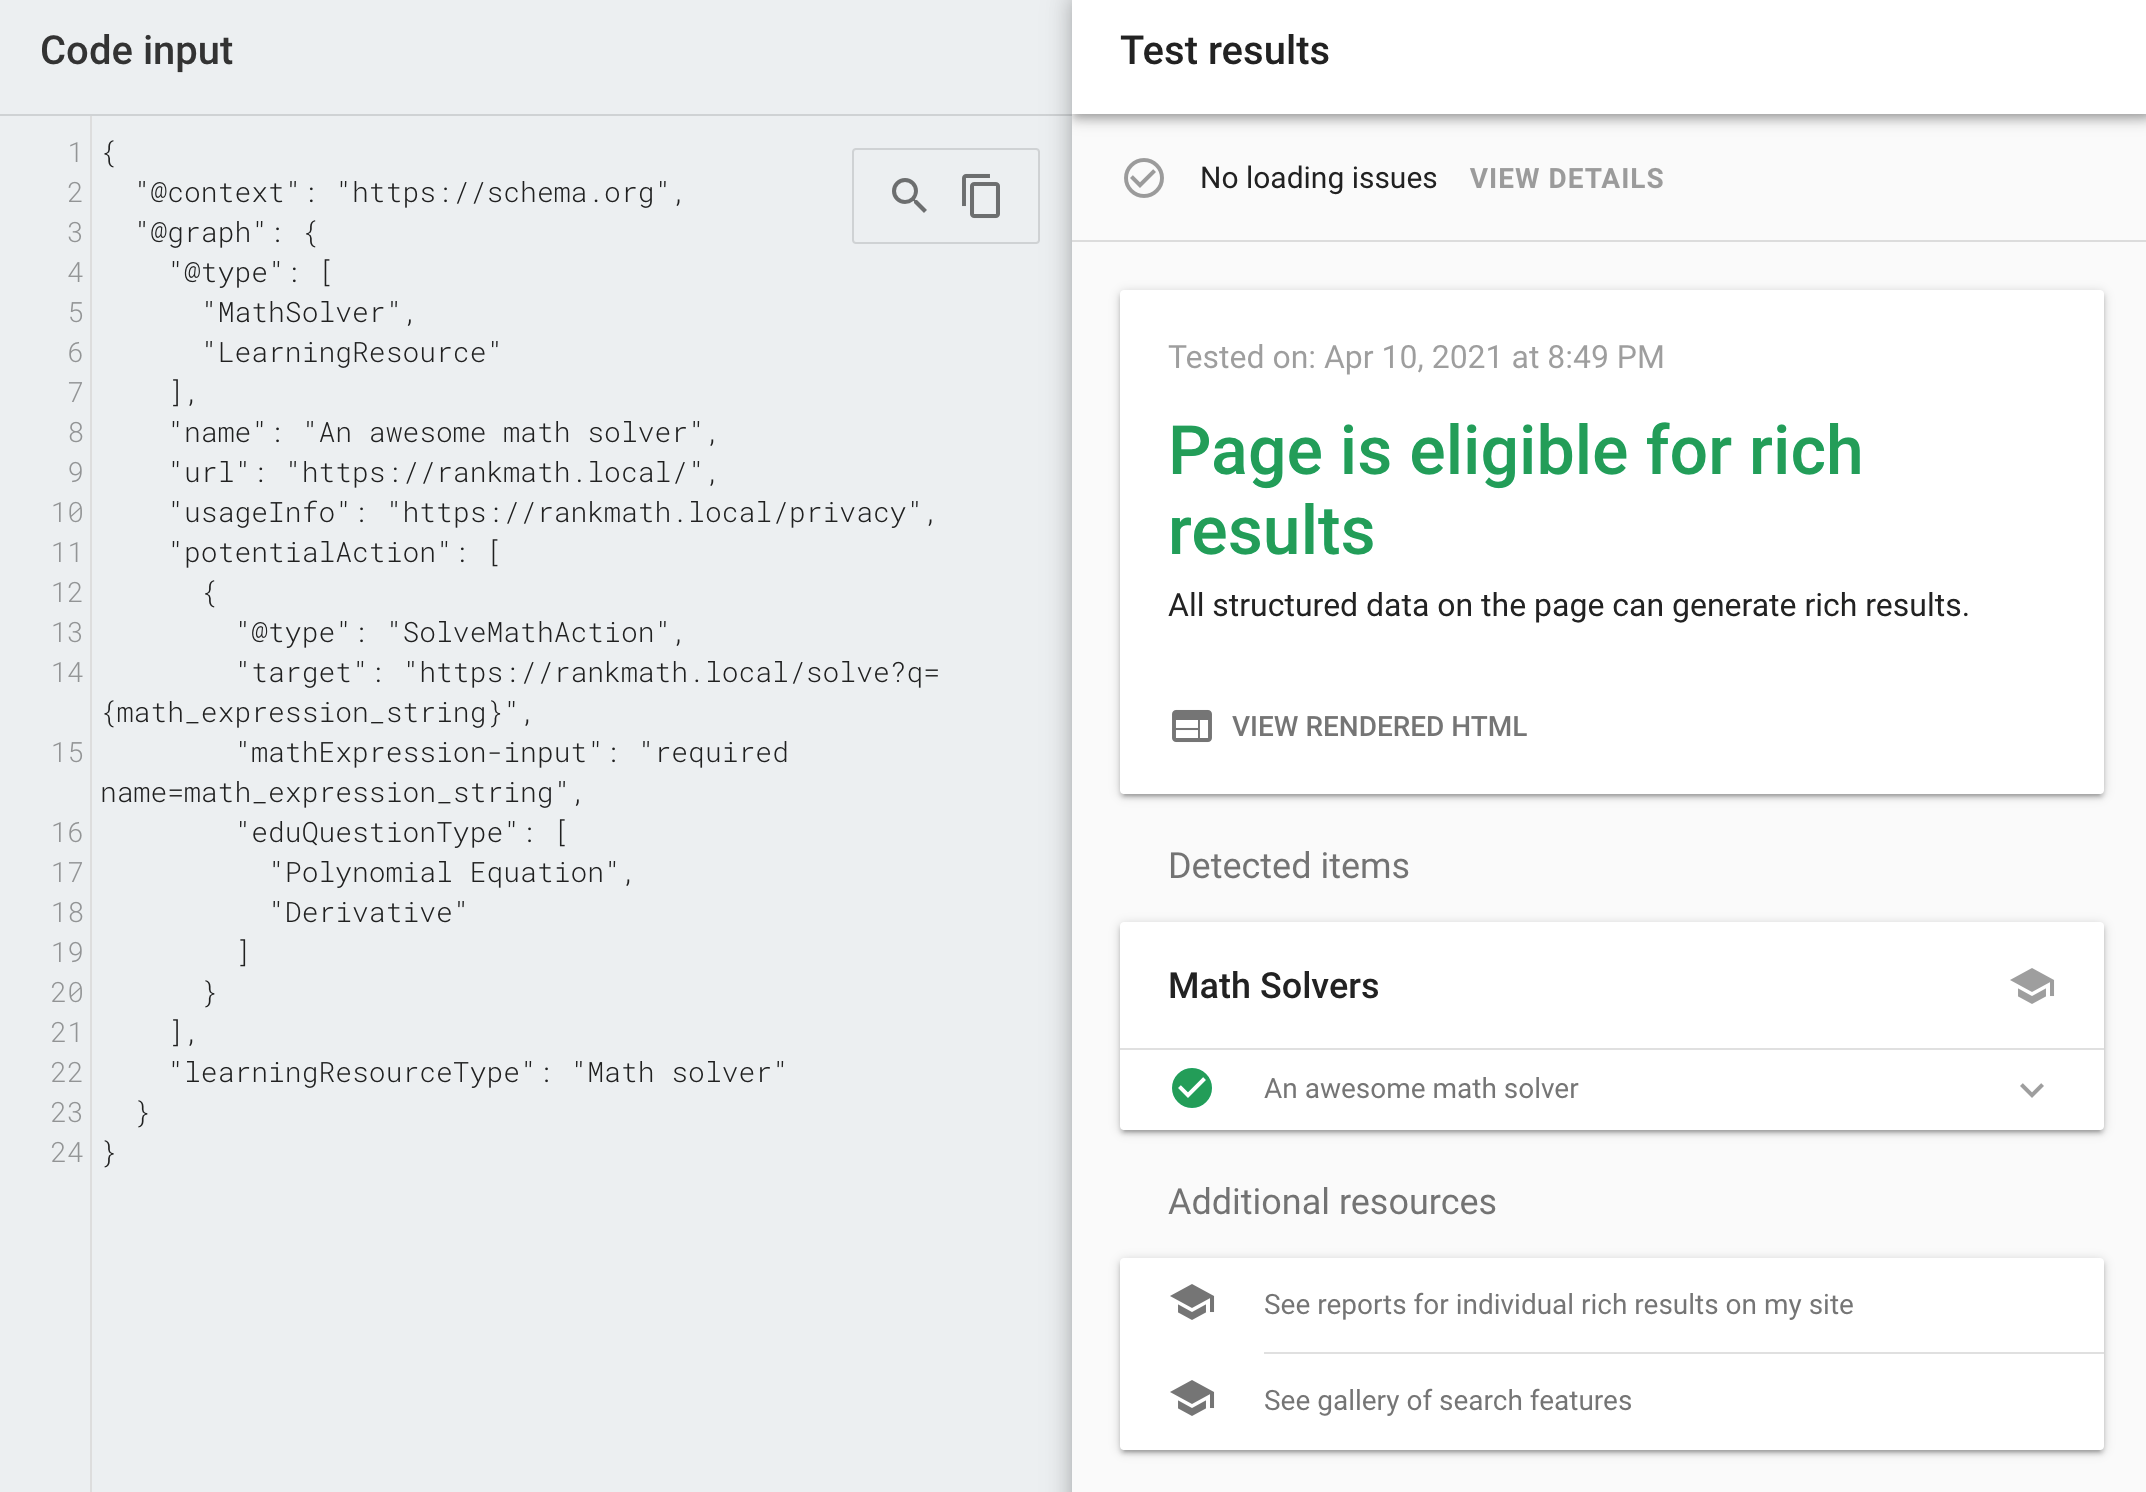 Validation Results in Google Rich Results Test Tool